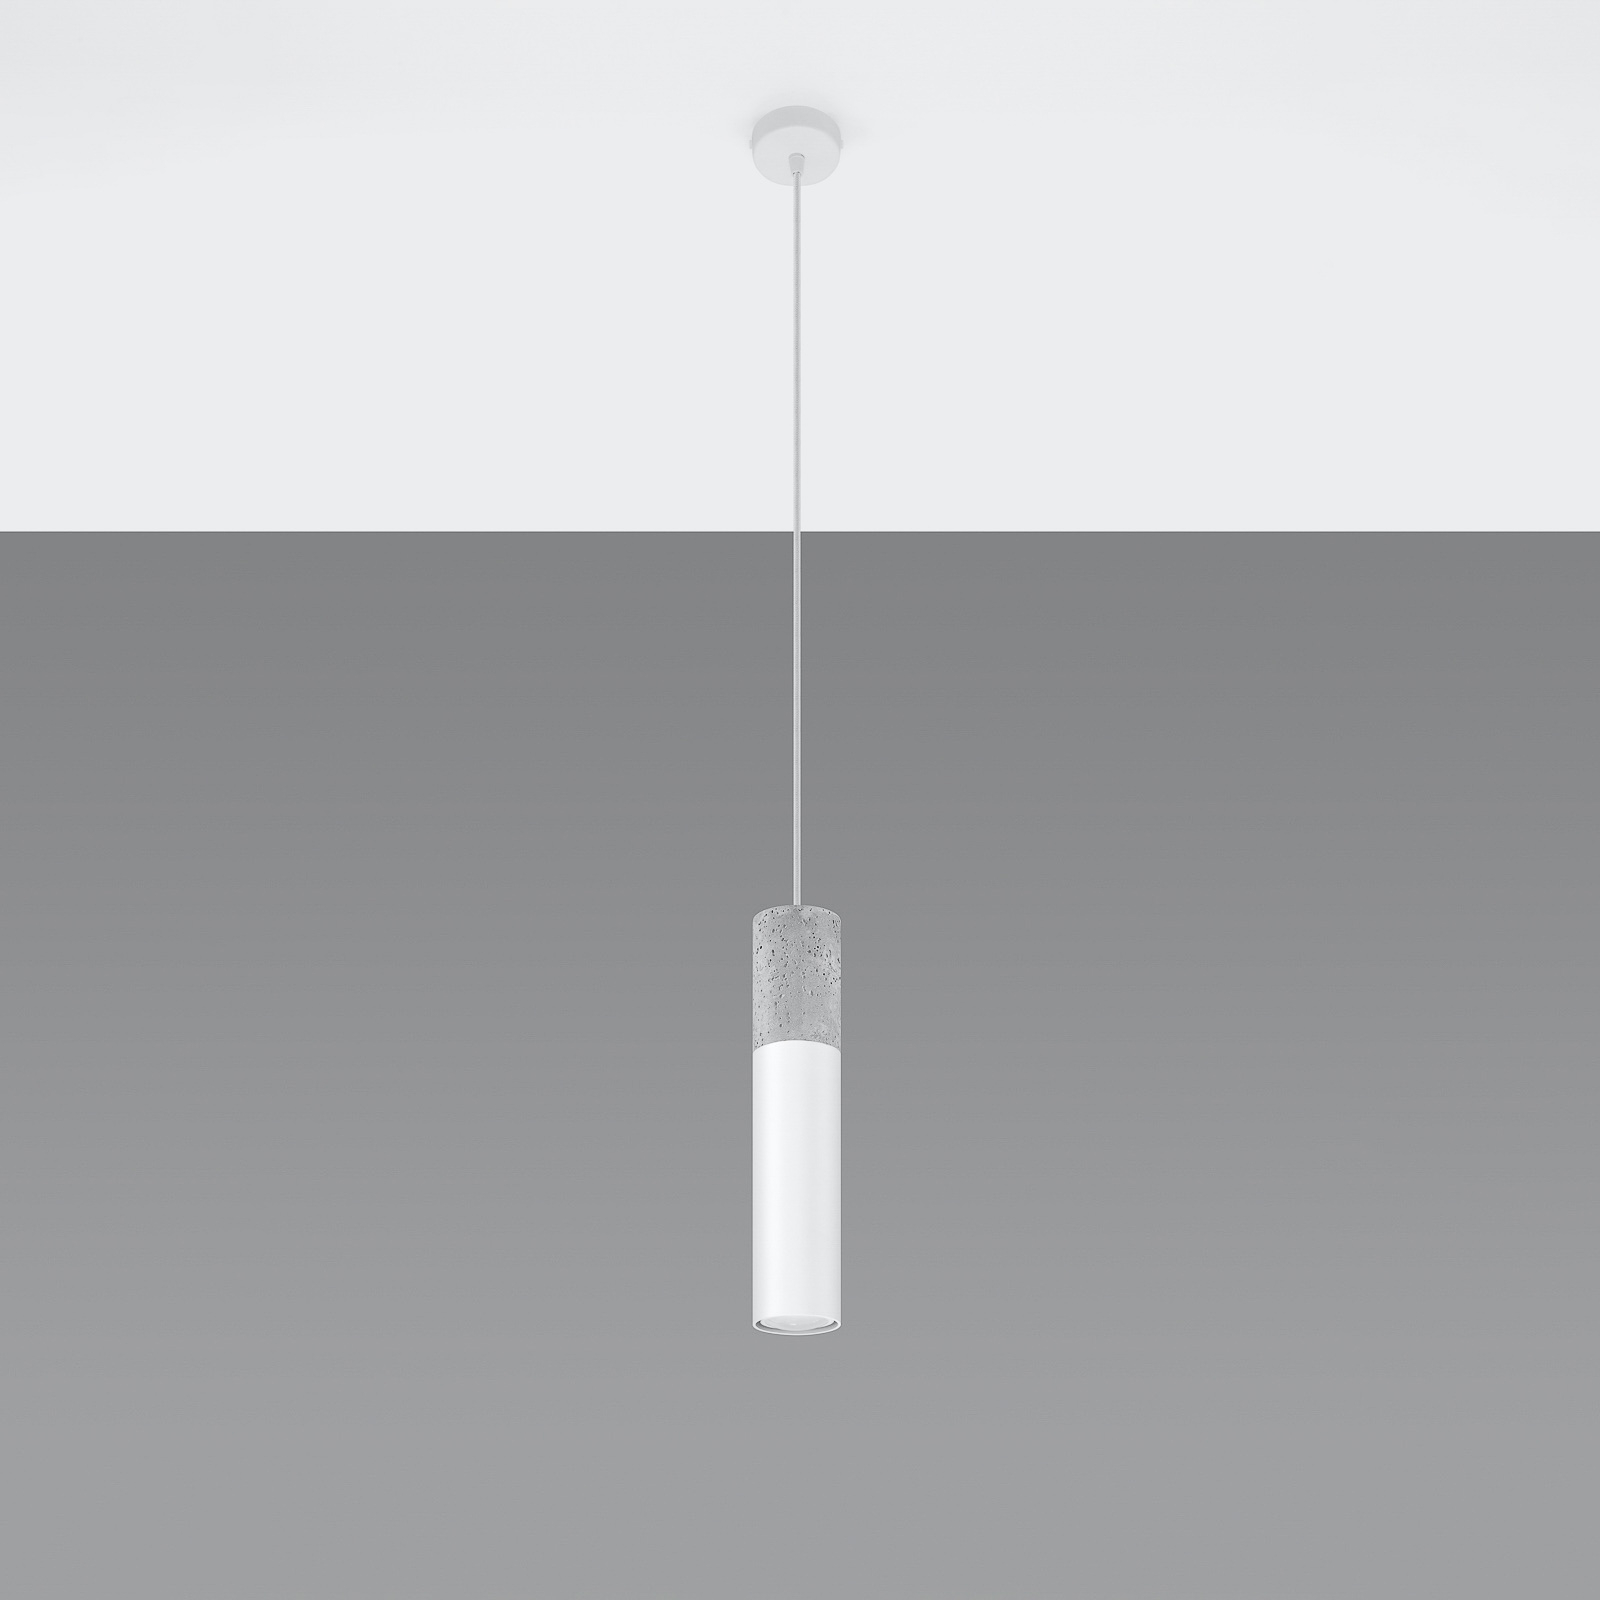 Hanglamp Tube, beton, wit, 1-lamp